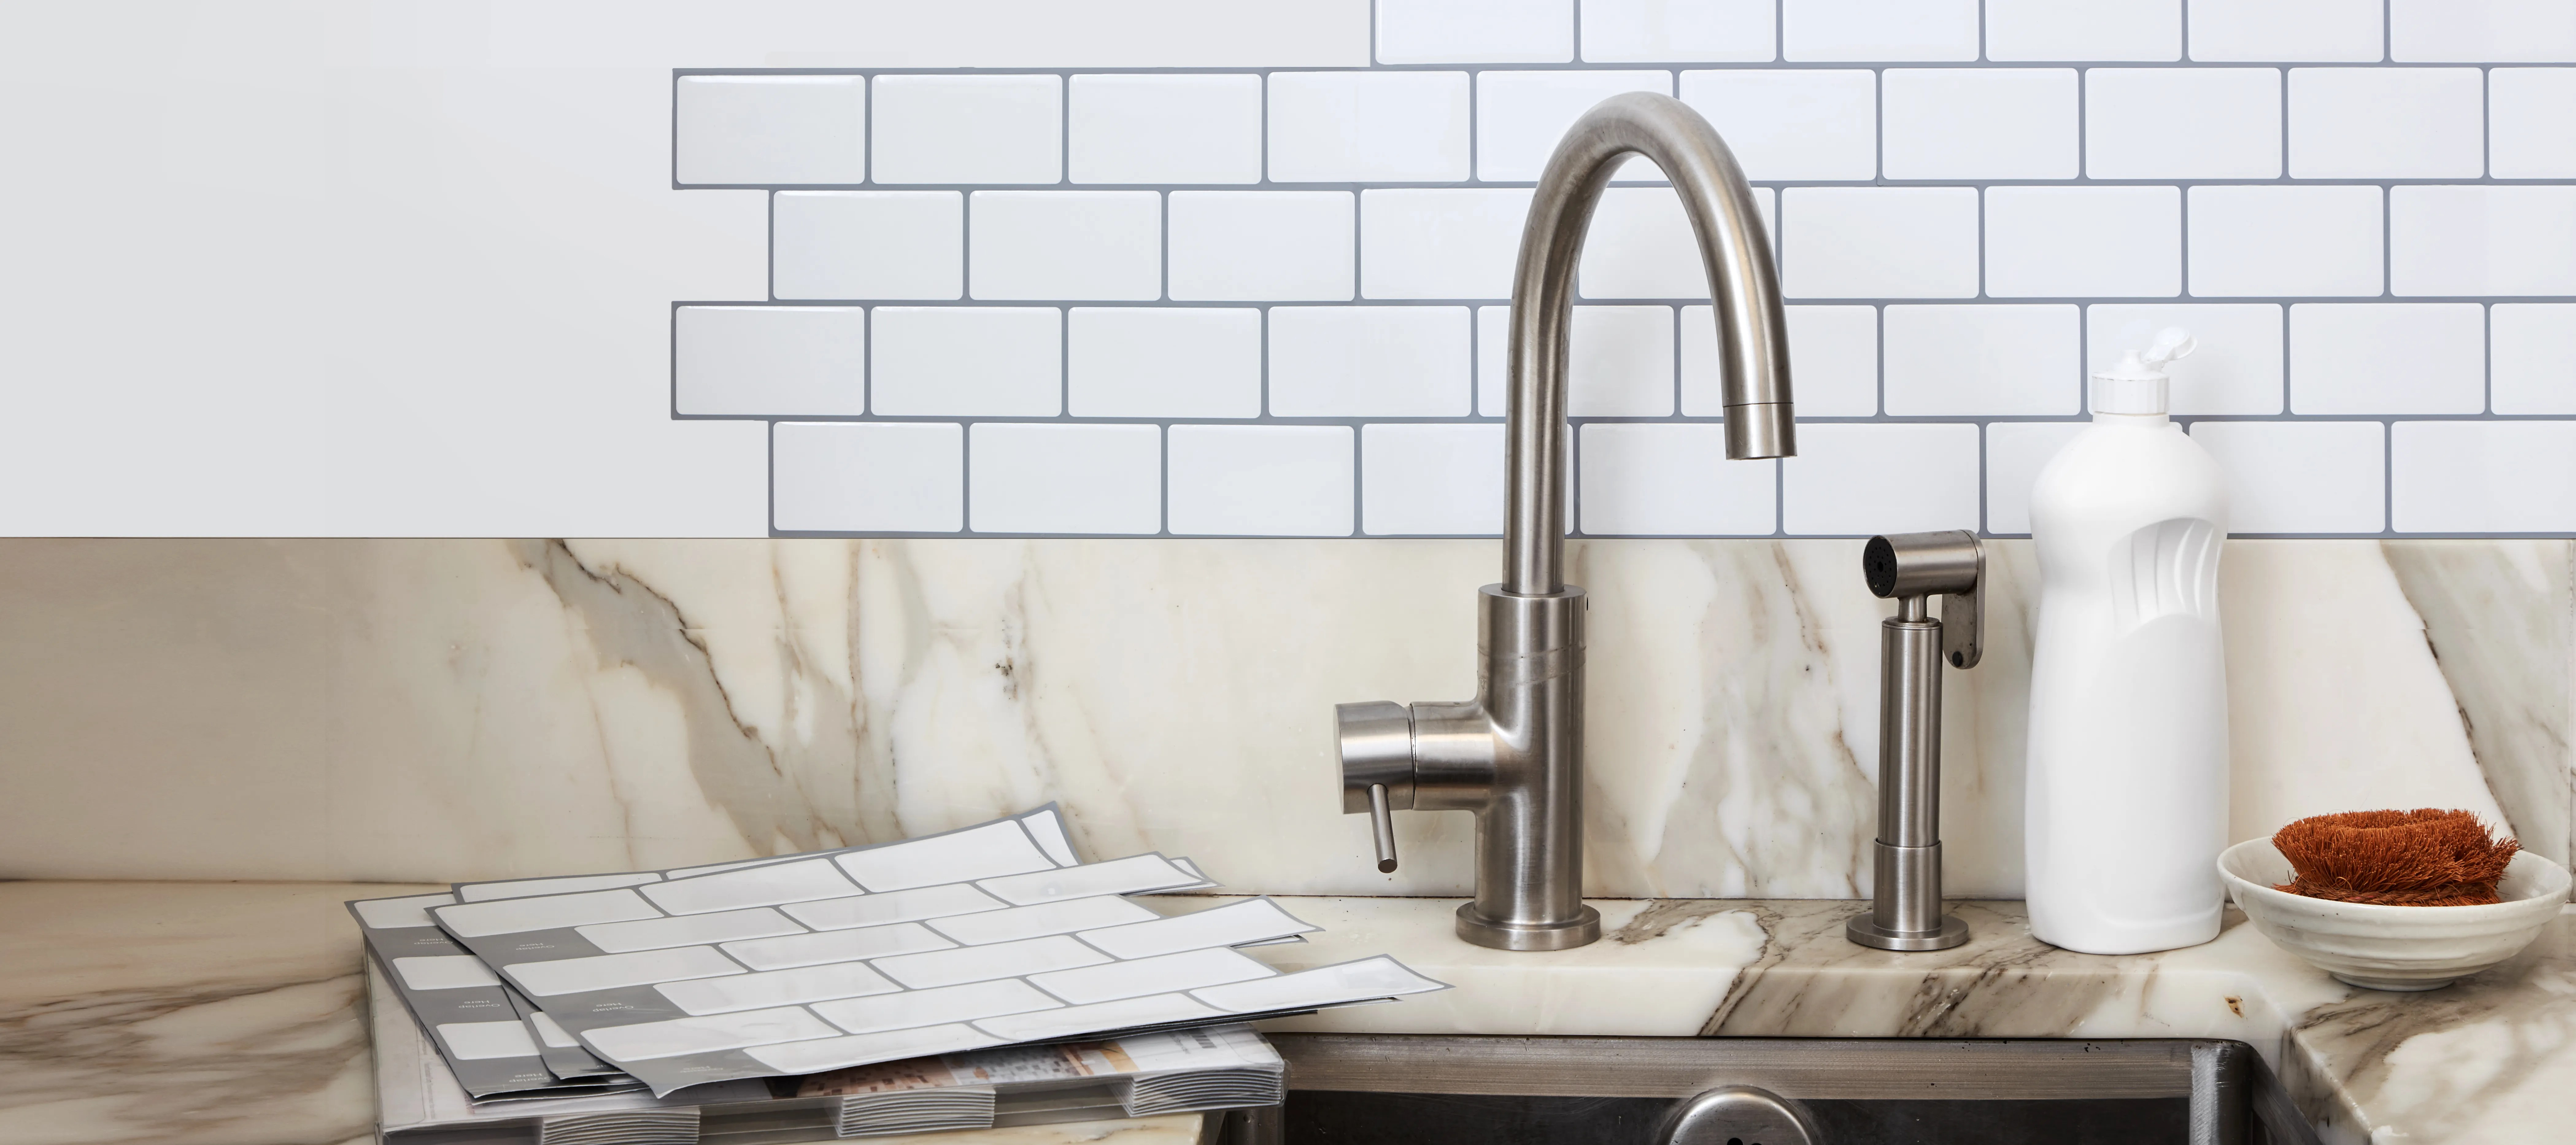 Self Adhesive Wall Tiles Will Transform Your Kitchen Epicurious